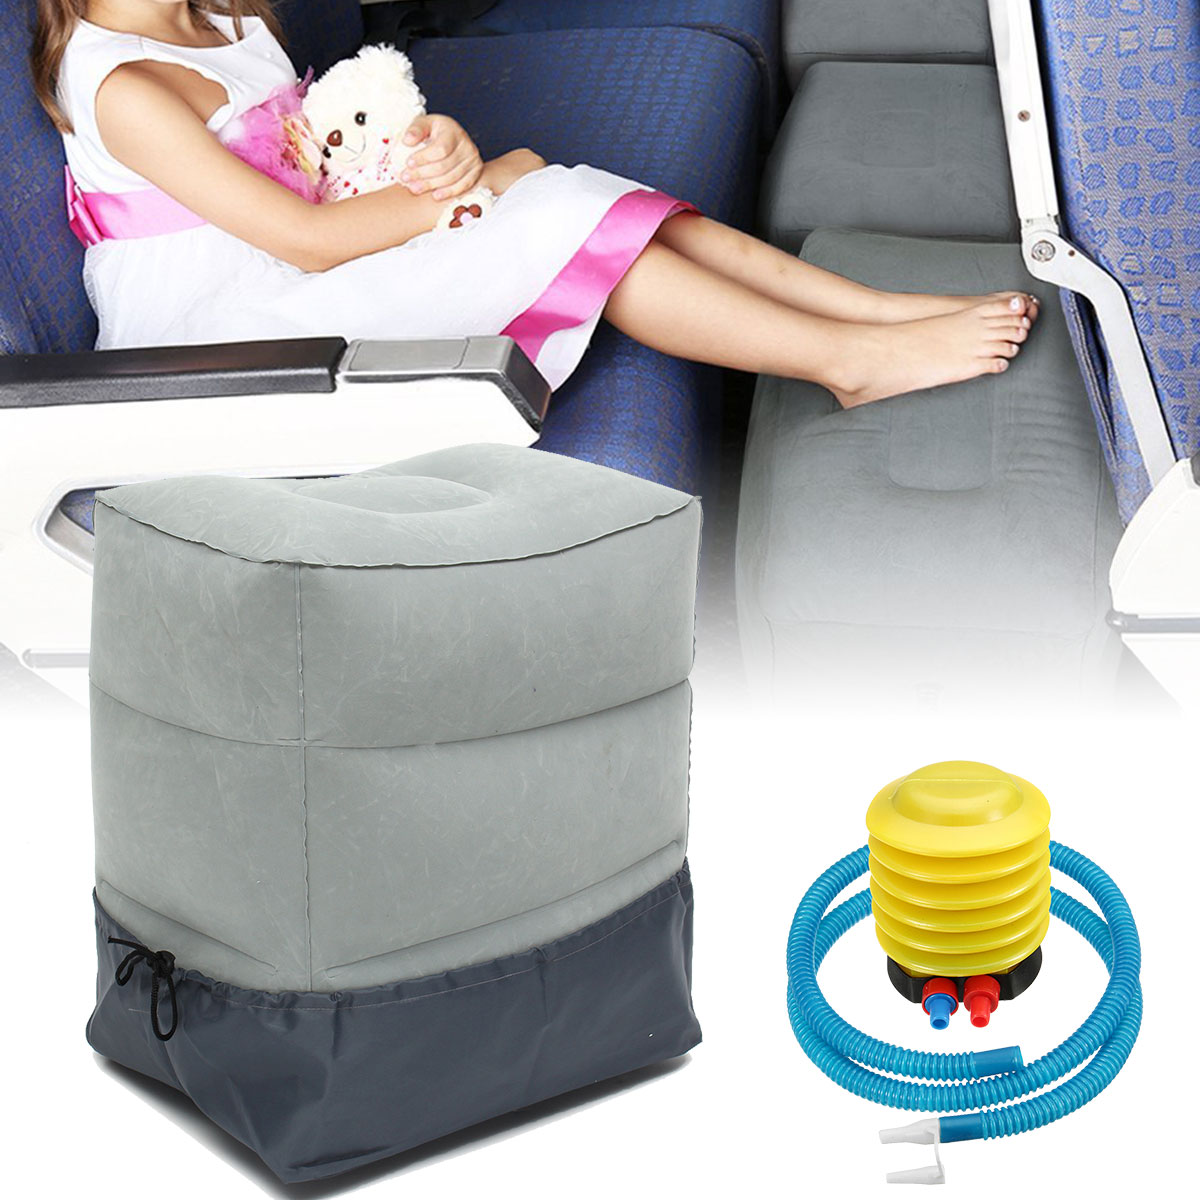 2Pcs Travel Pillow for Kids Baby Inflatable Footrest Travel Bed for Airplane